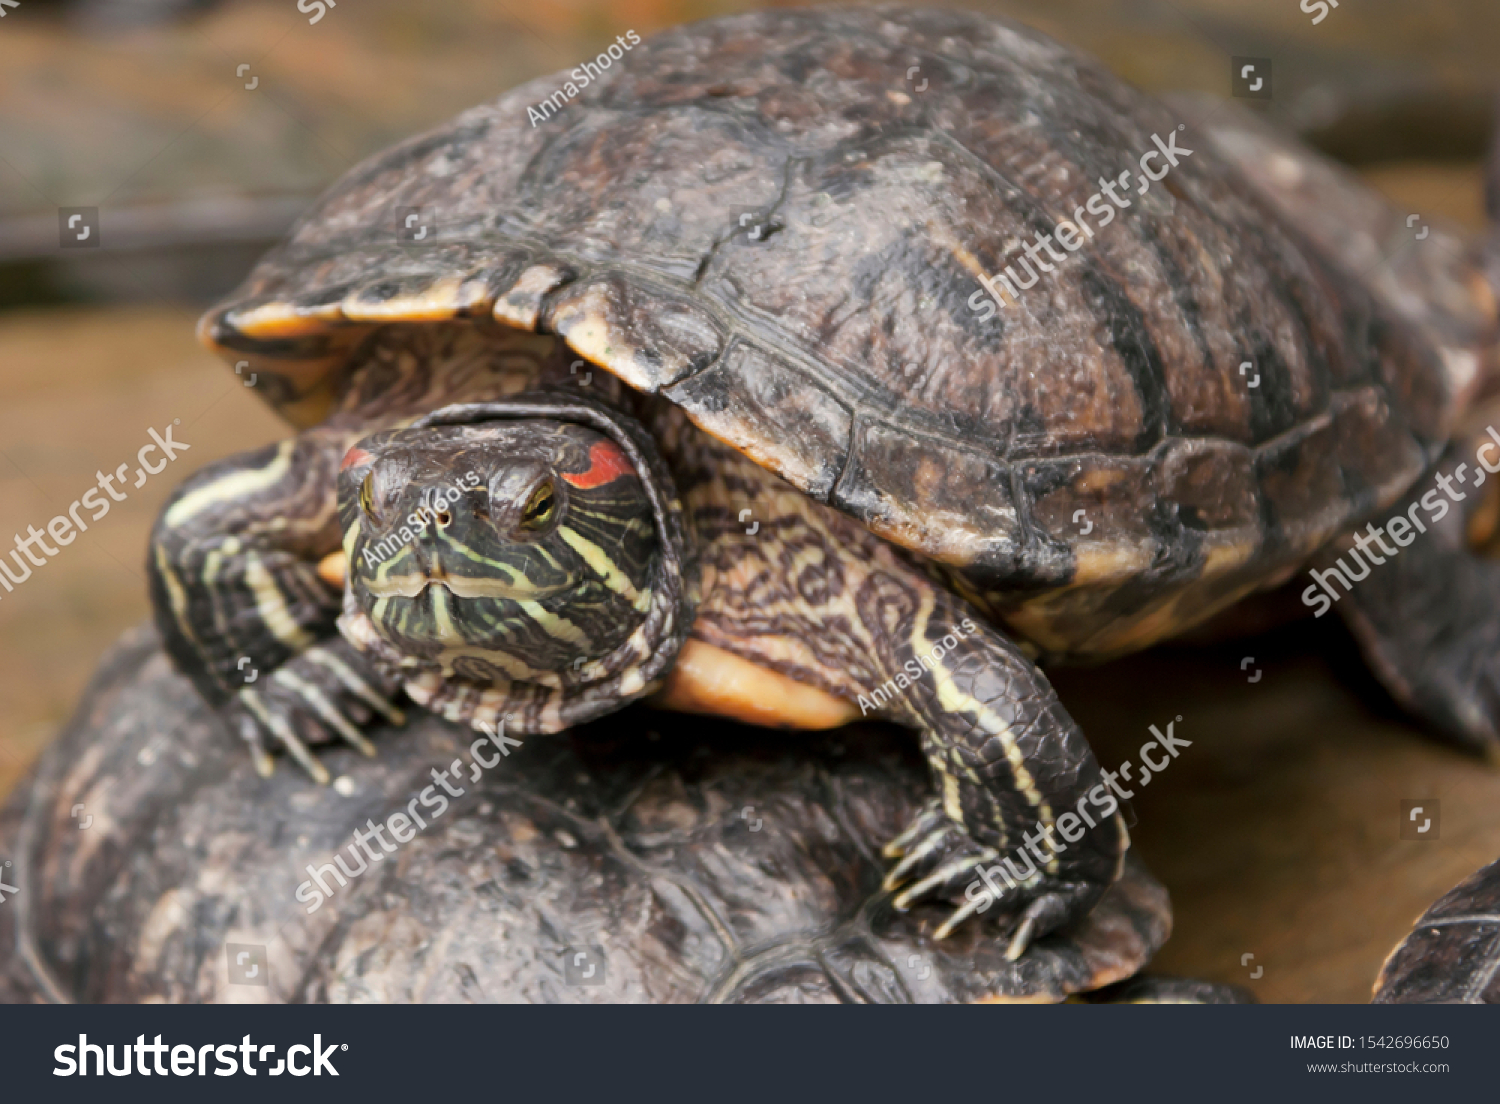 stock-photo-the-curious-turtle-basks-on-